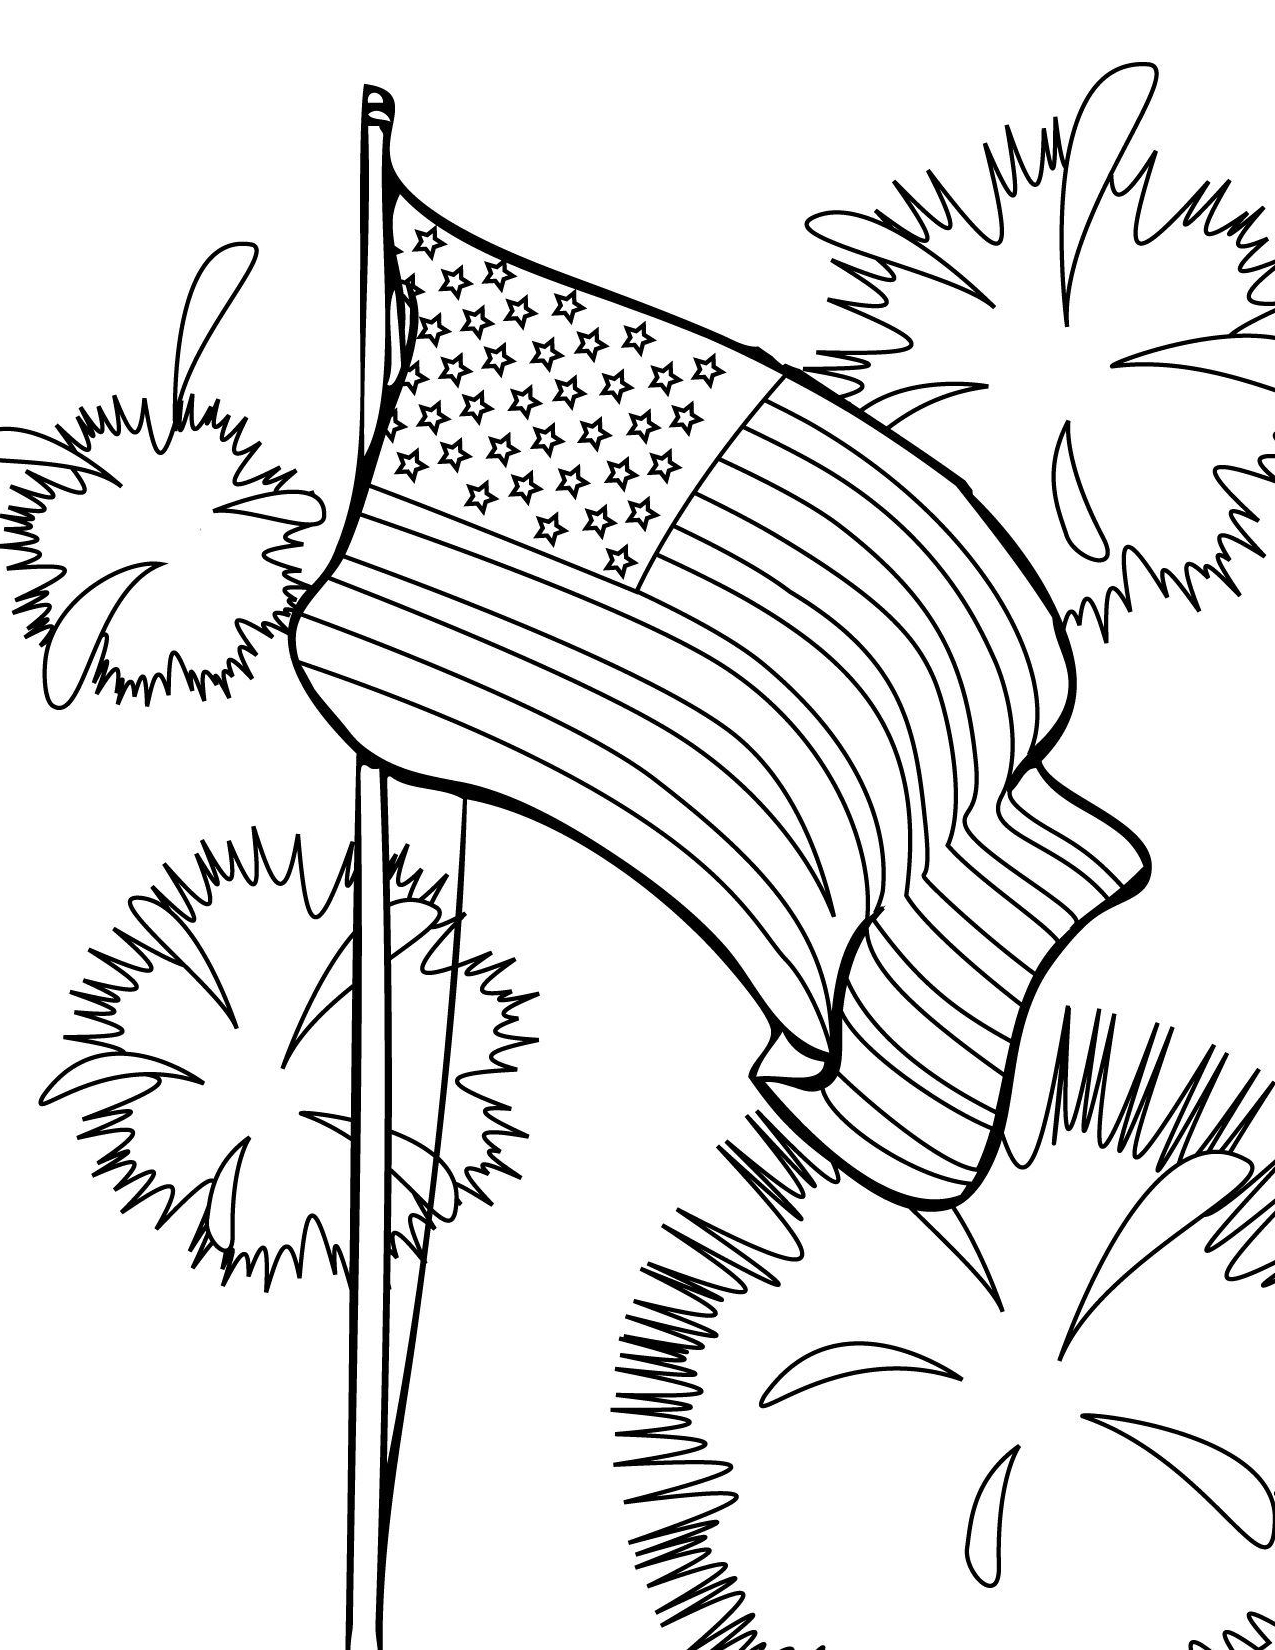 4th of july patriotic heart coloring pages - Hellokids.com | 1650x1275